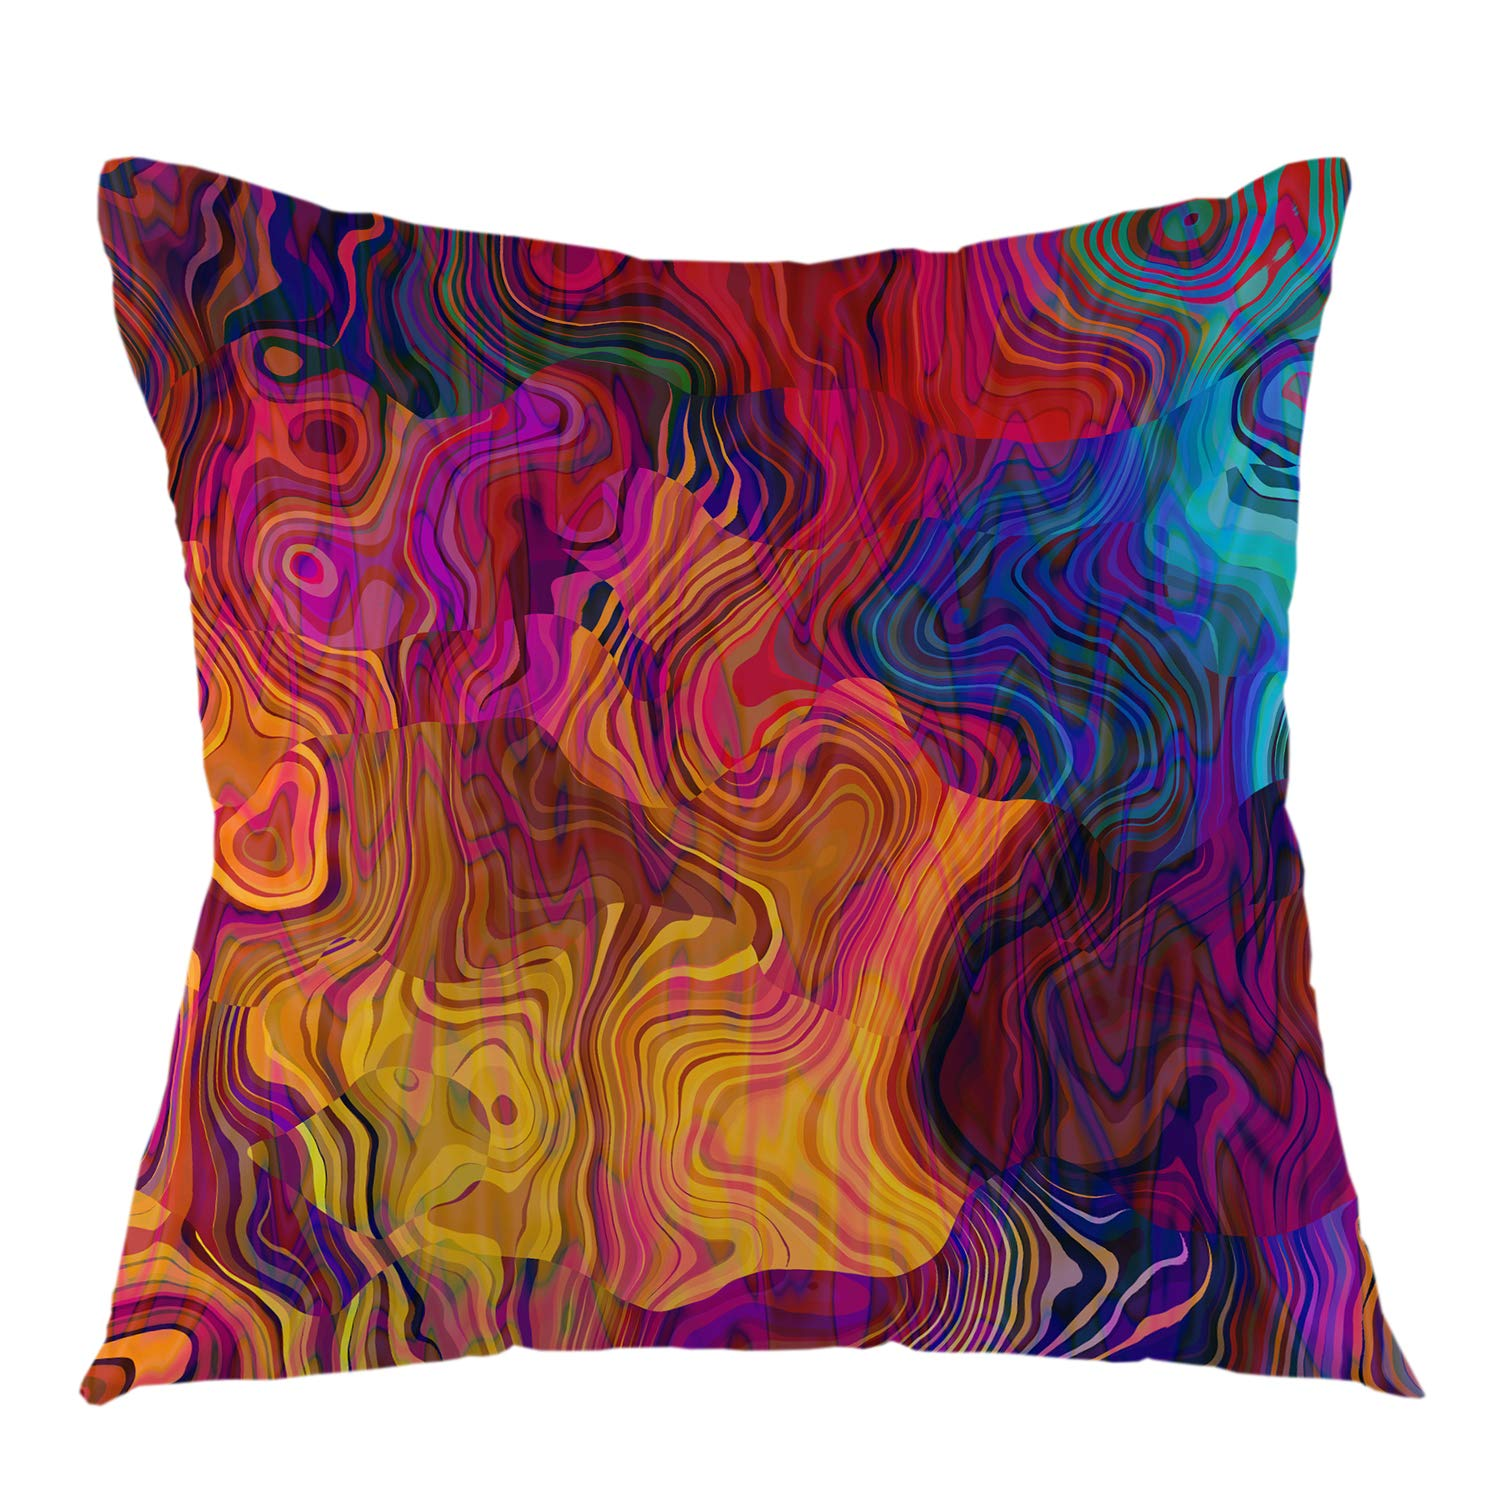 """oFloral Chaotic Waves Pillowcase,Colorful Rainbow with Purple Fuchsia Pink Red Orange Gold Blue Throw Pillow Cover Square Cushion Case for Sofa Couch Car Bed Home Decorative 18"""" x 18"""" inch"""